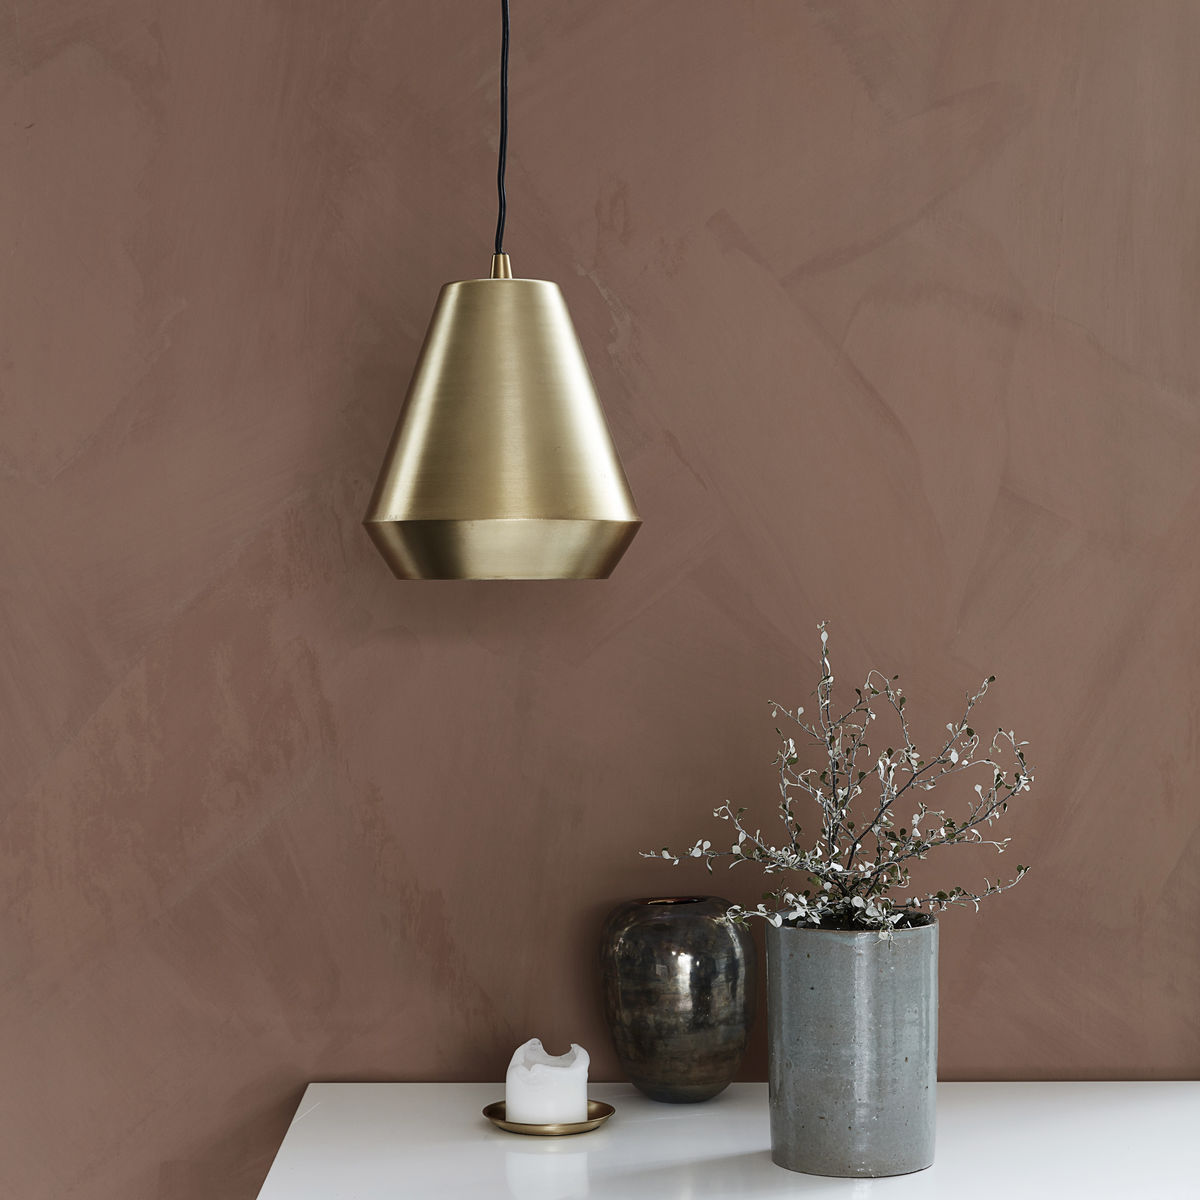 em_home-house-doctor-brass-hood-pendant-ceiling-light-lamp-home-decor-cb0991_psh (3)